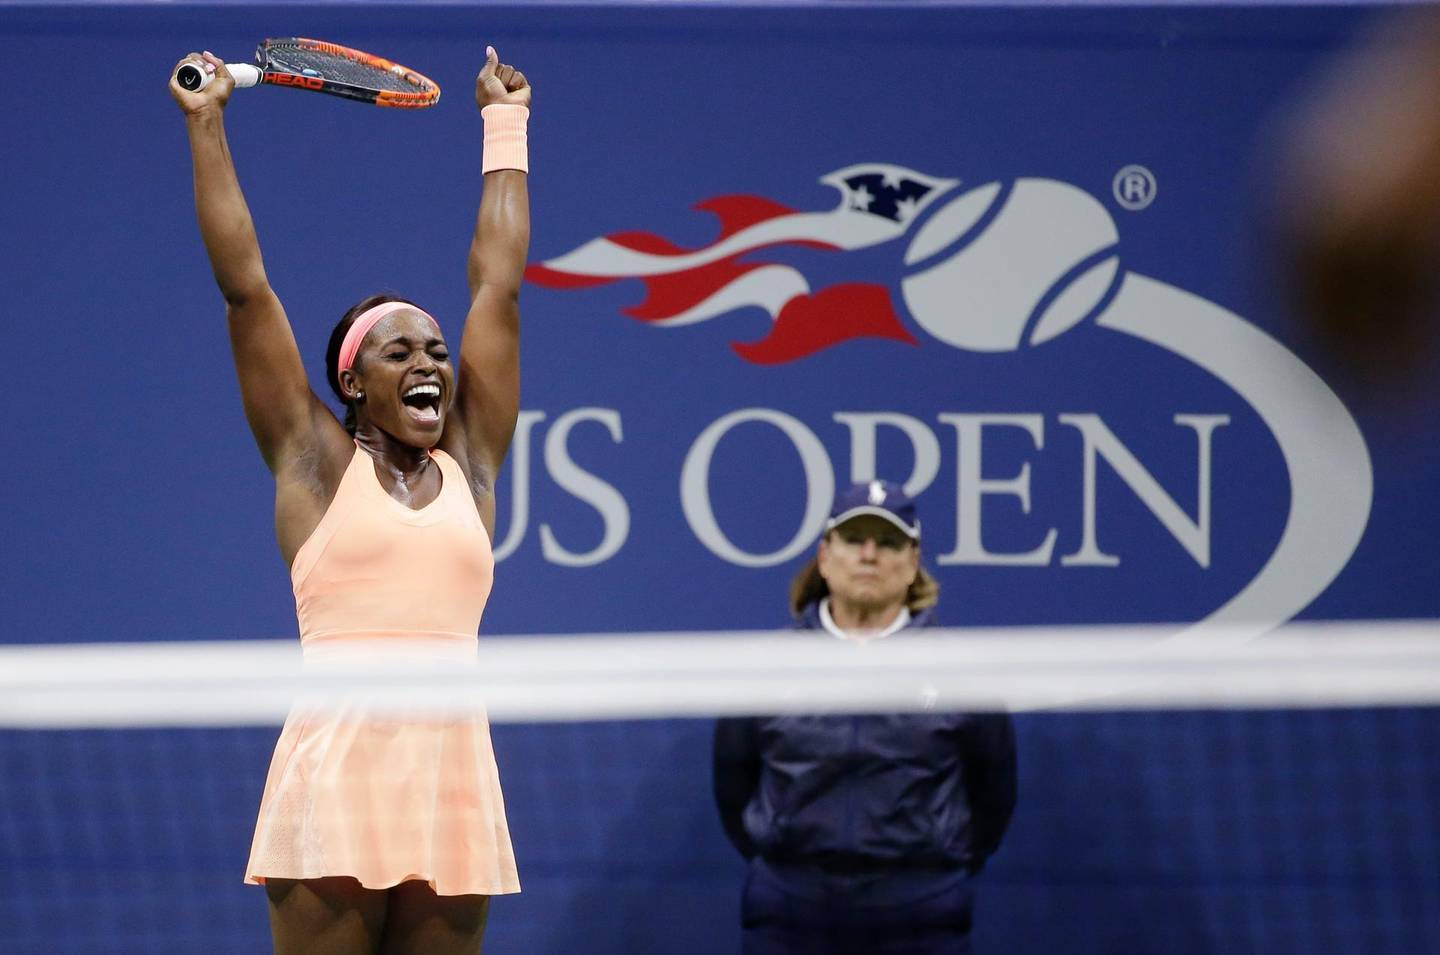 FILE - In this Sept. 7, 2017, file photo, Sloane Stephens, of the United States, reacts after defeating Venus Williams, of the United States, in the semifinals of the U.S. Open tennis tournament in New York. It's hard to pick one play that stood out for Sloane Stephens in her ride to the U.S. Open title this summer, but this 25-stroke point against Williams might have been the gem. (AP Photo/Seth Wenig, File)